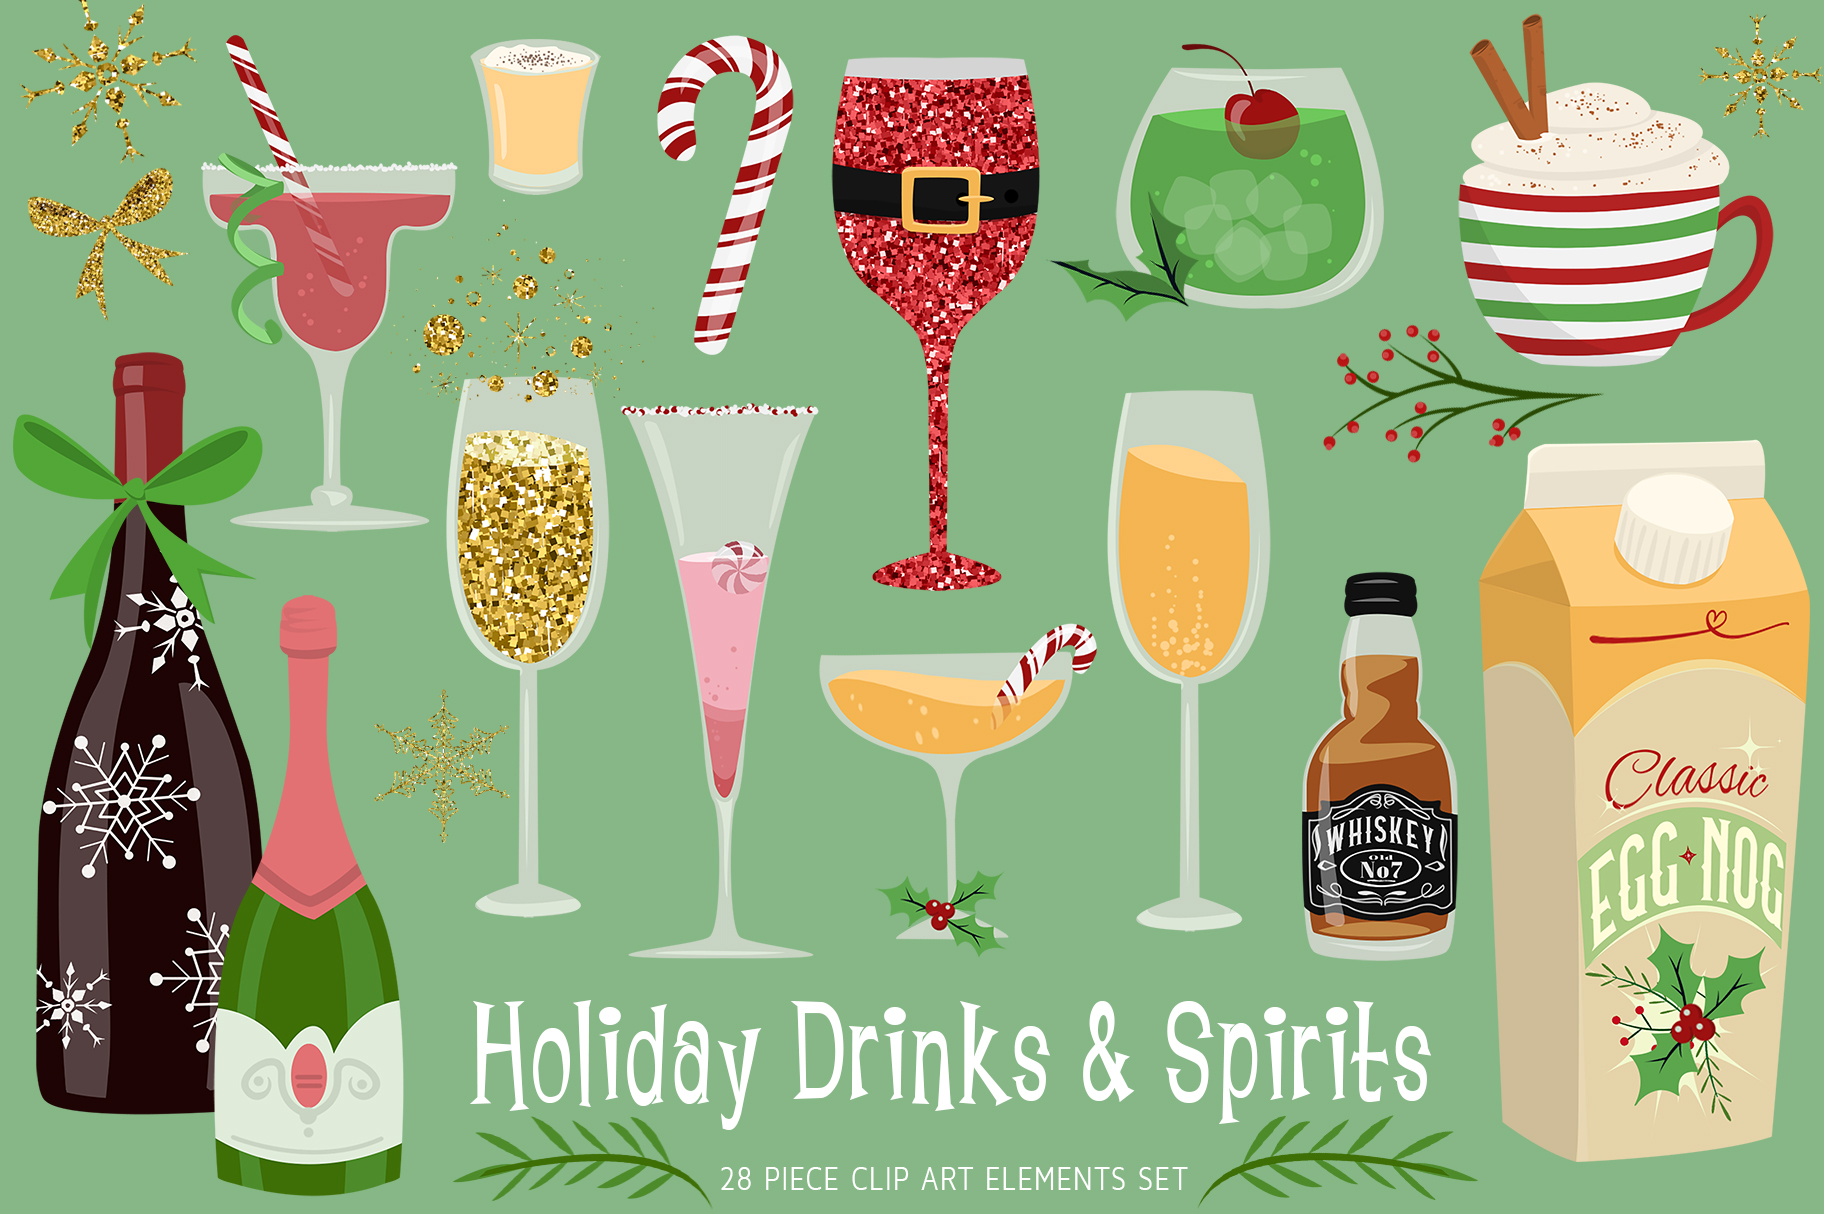 Holiday Drinks & Spirits Clip Art Collection example image 1